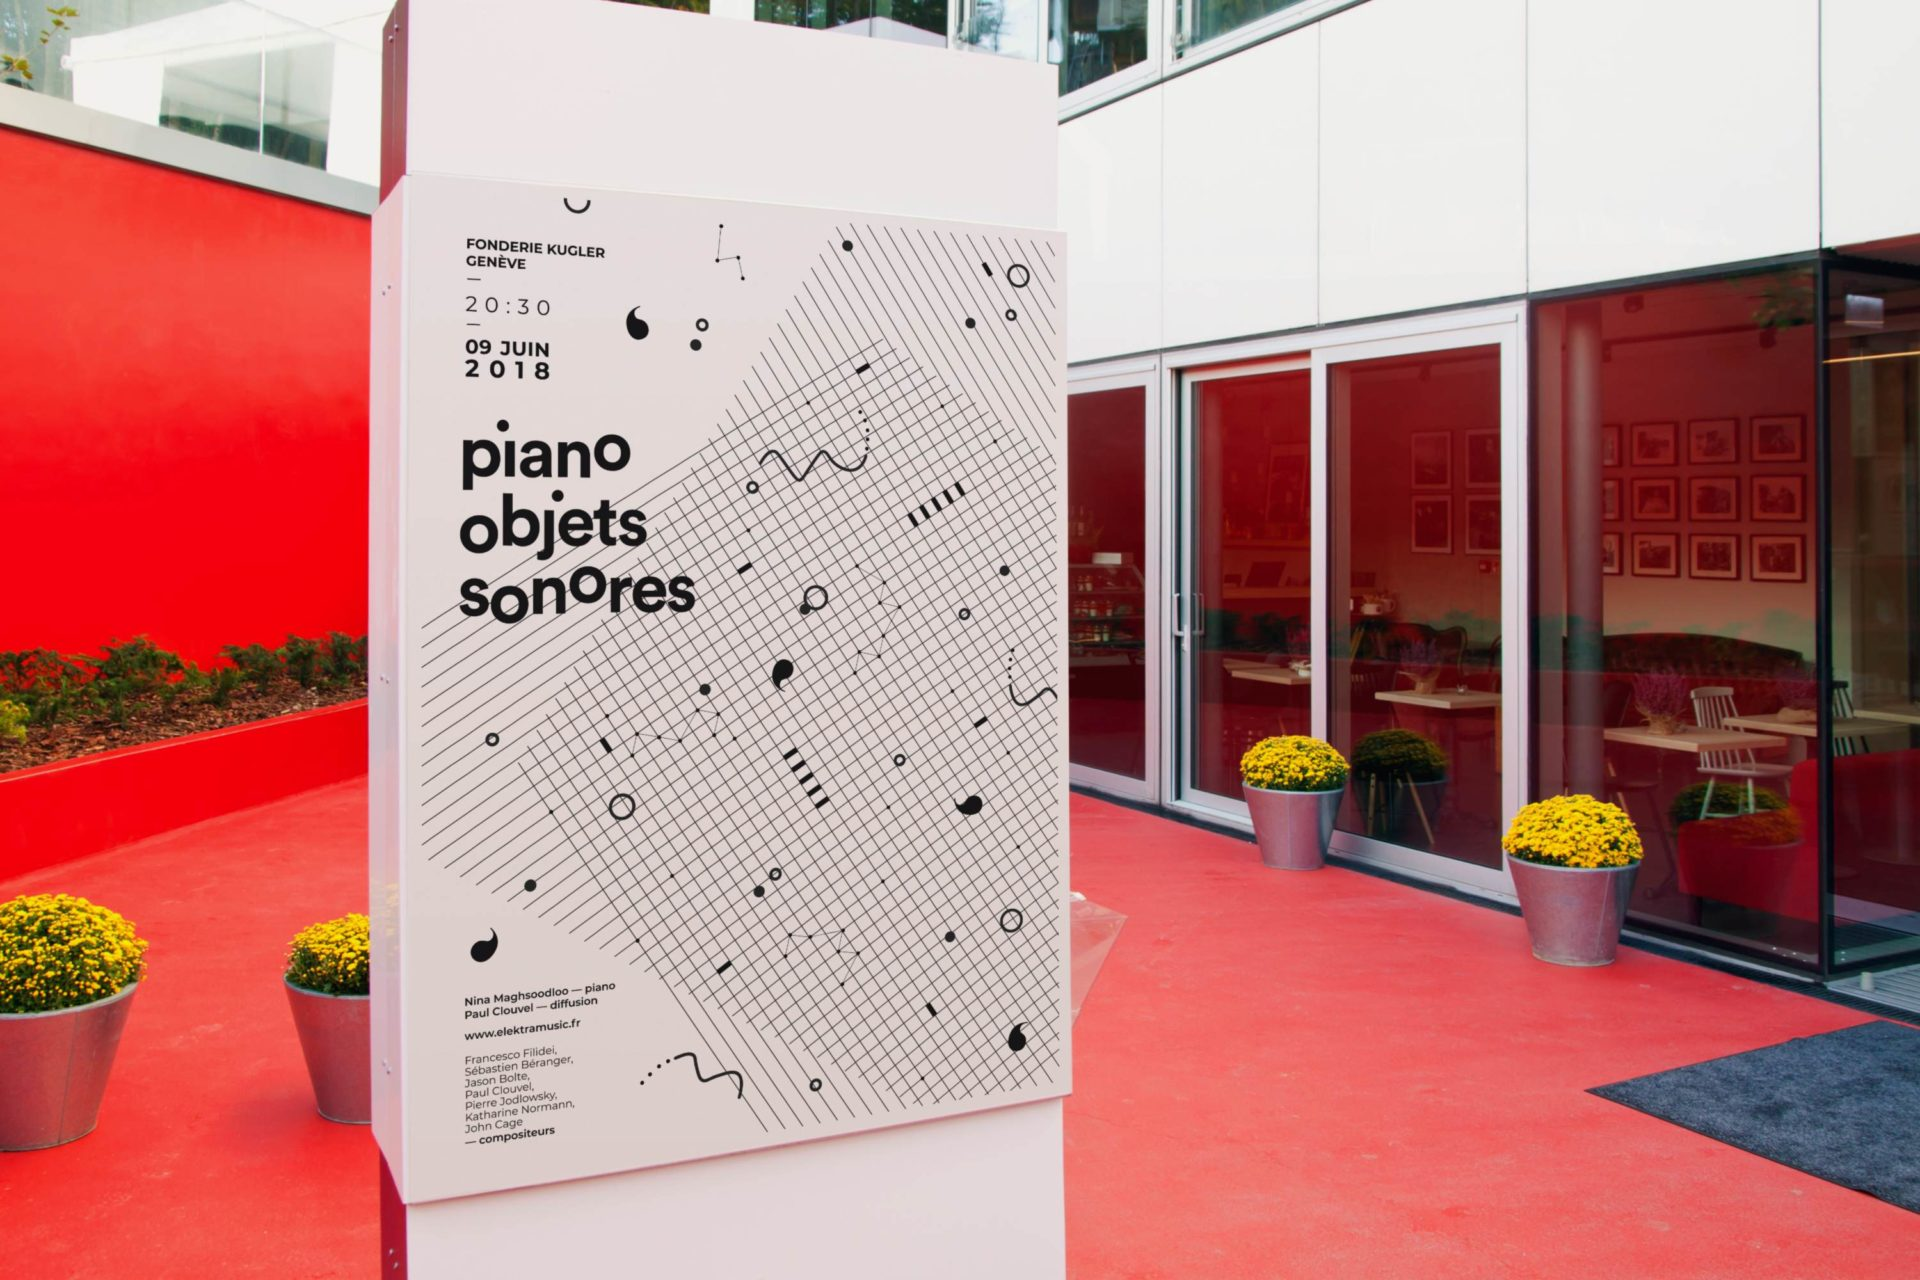 Piano objets sonores affiche 1